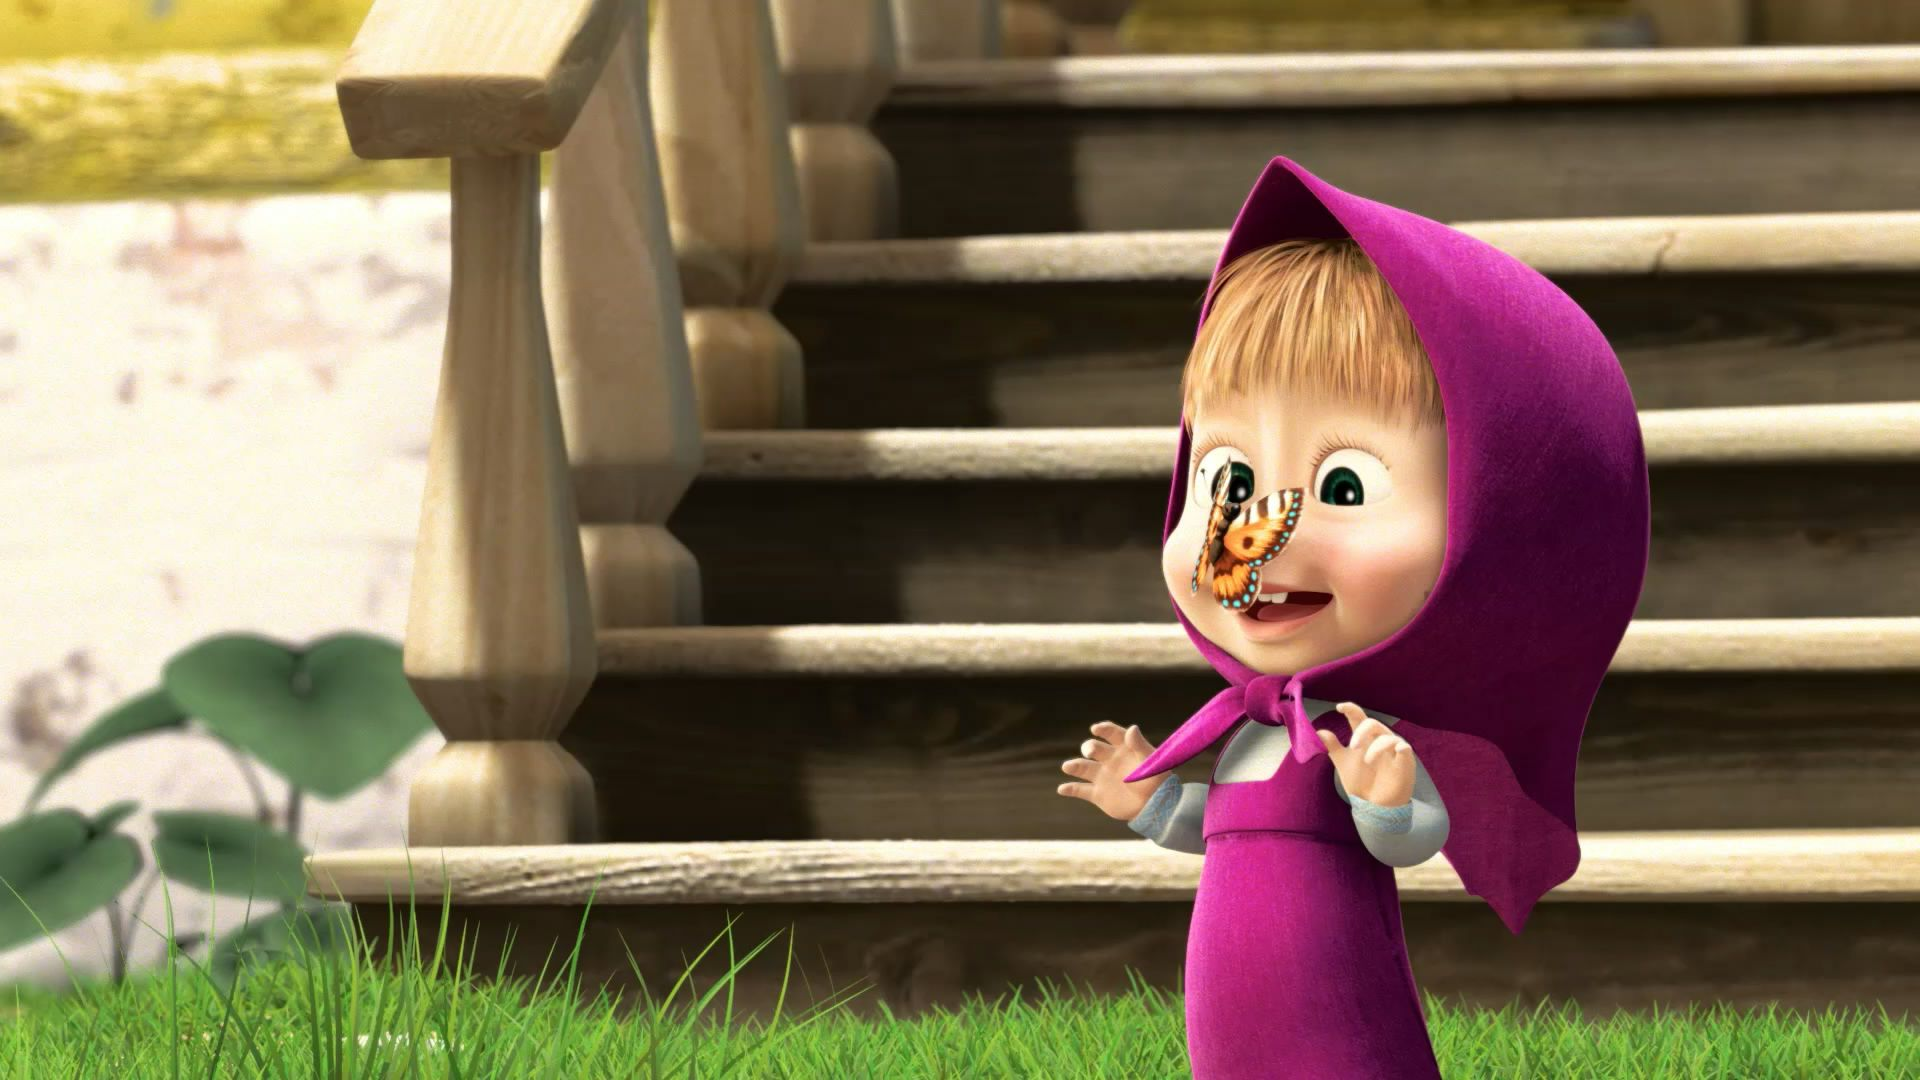 Masha And The Bear Wallpaper Cute Cute Masha And The Bear